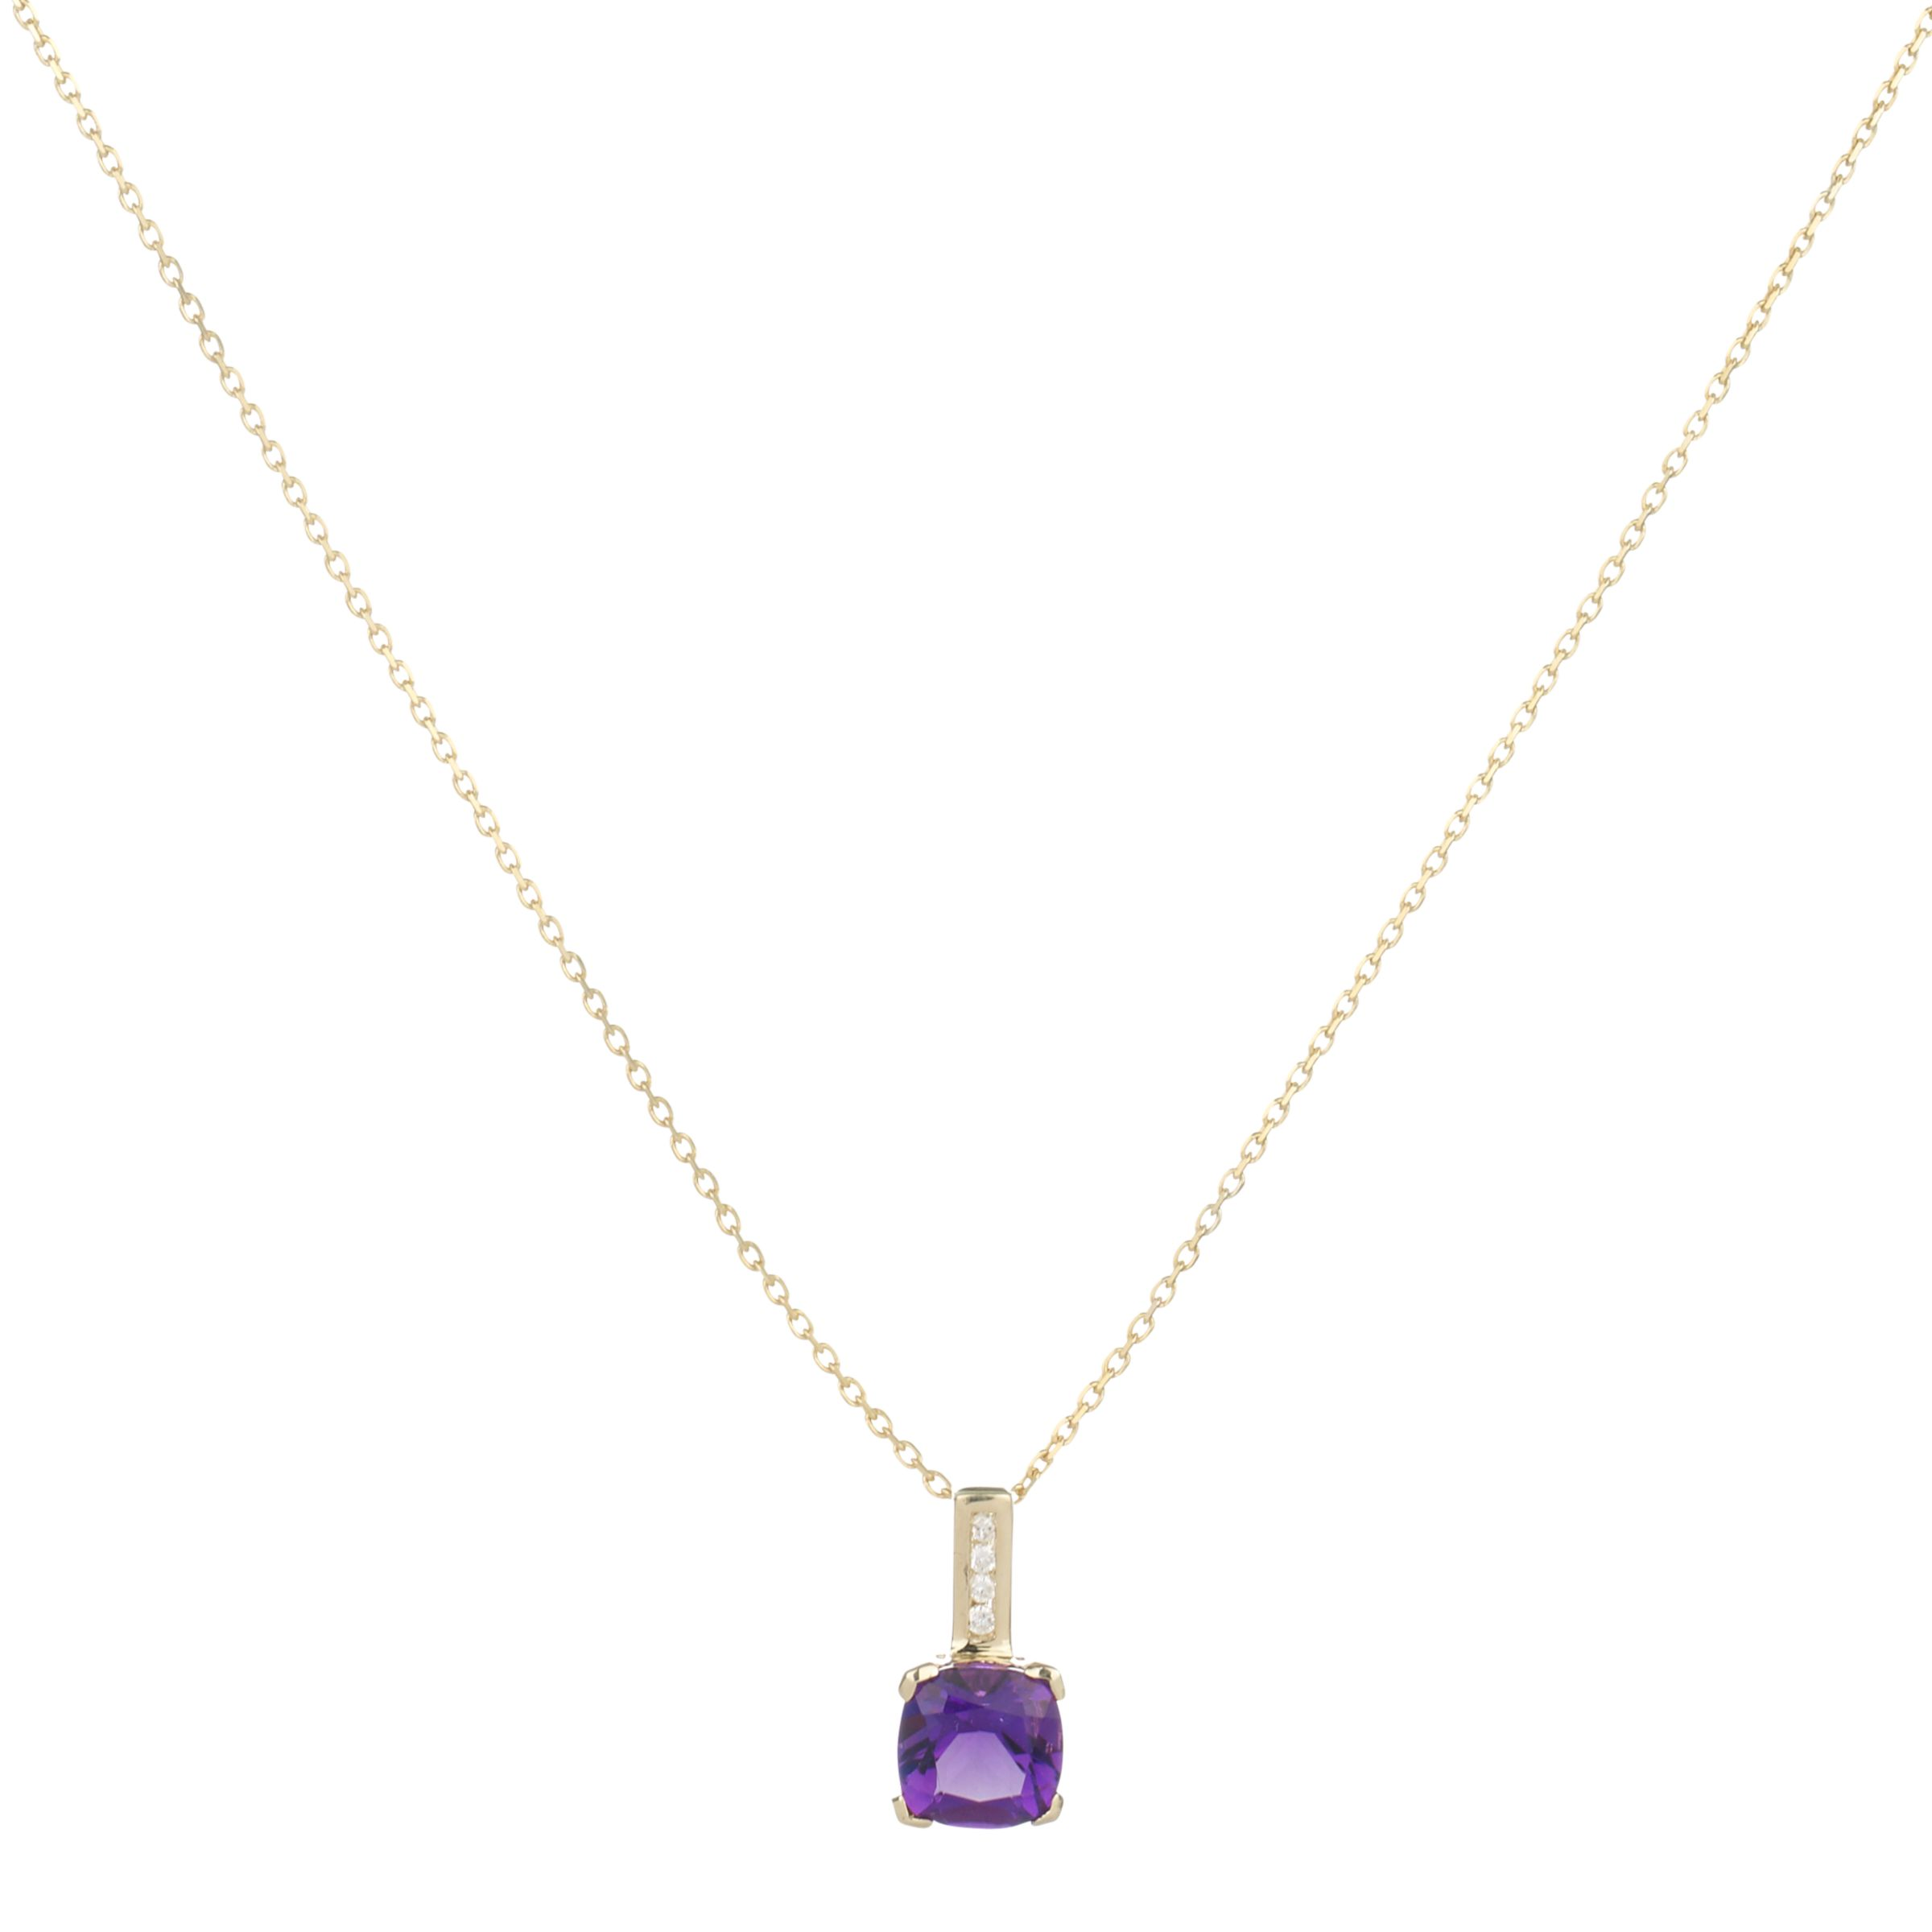 9ct Yellow Gold Cushion Cut Amethyst Diamond Pendant Necklace